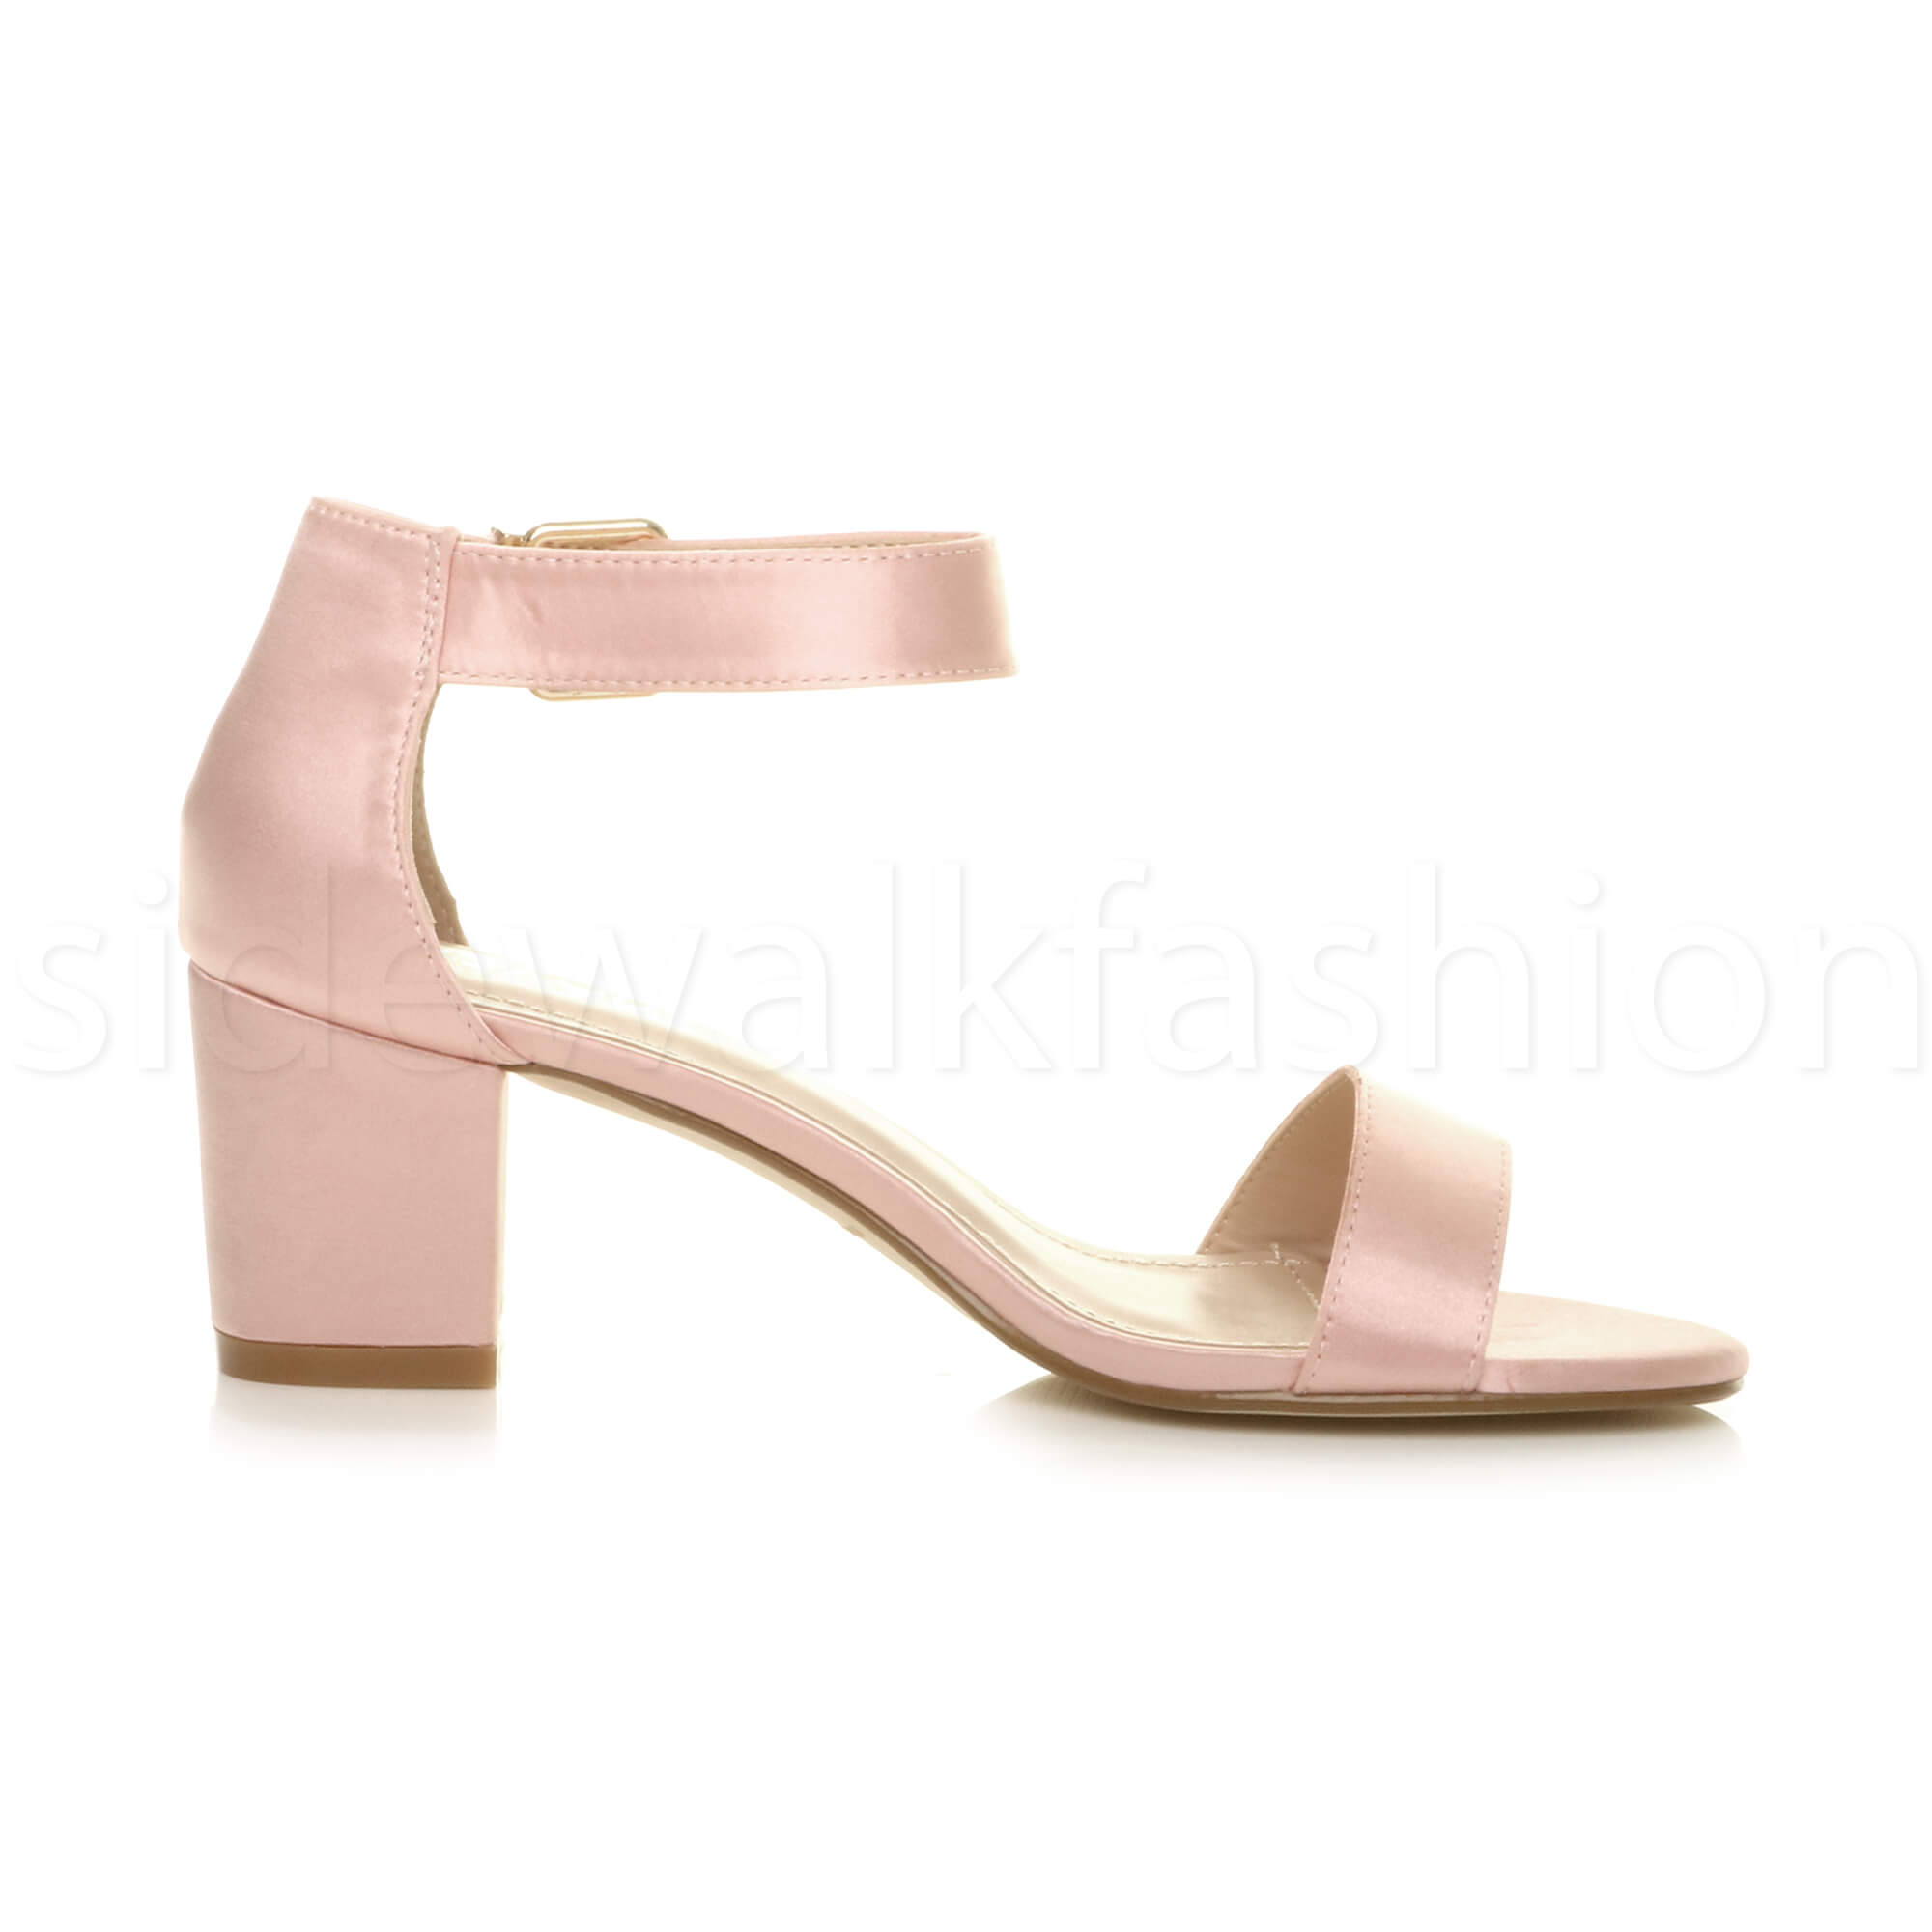 Womens-ladies-low-mid-heel-buckle-ankle-strap-peep-toe-party-strappy-sandal-size thumbnail 4